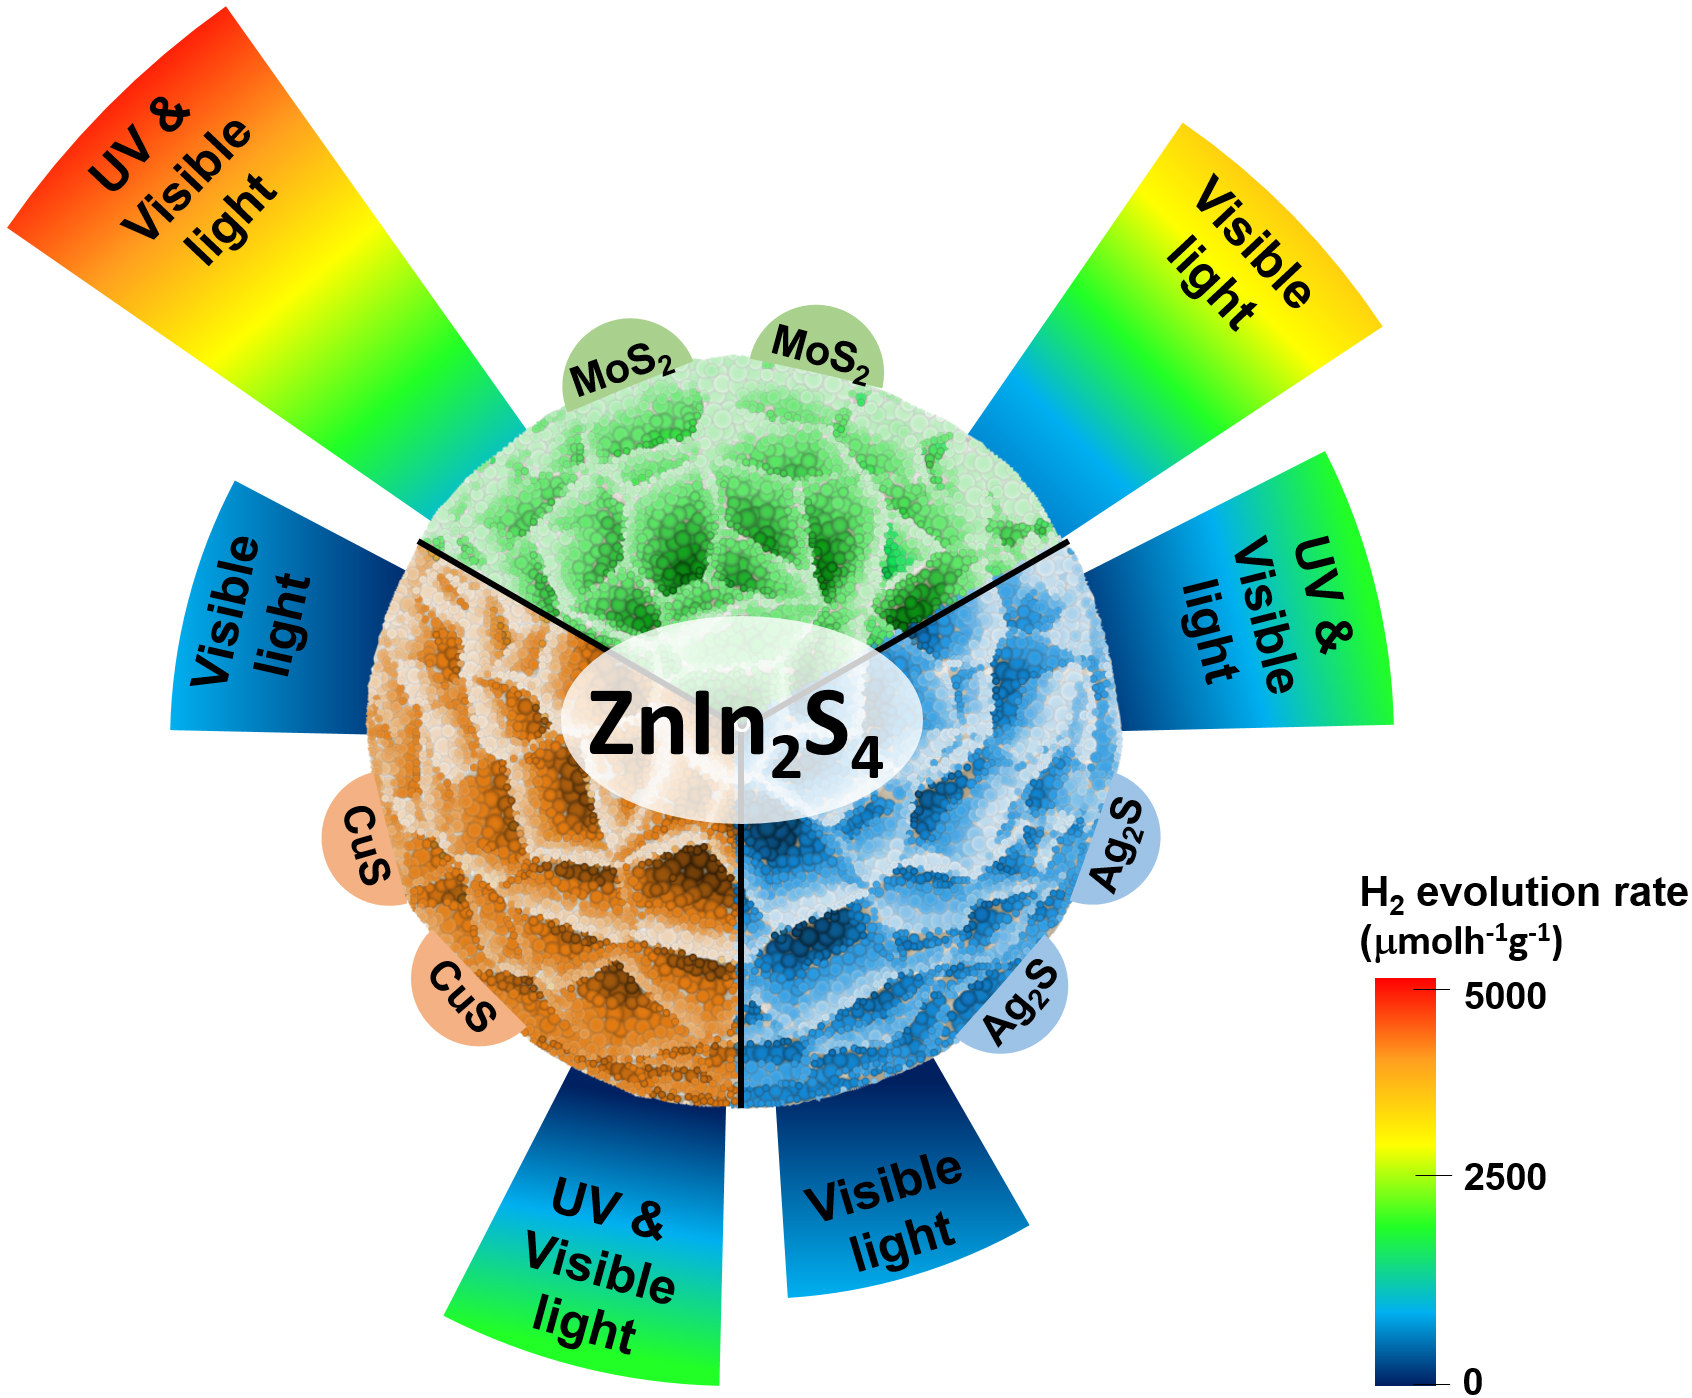 In situ photo-Assisted Deposition and Photocatalysis of ZnIn2S4/Transition Metal Chalcogenides for Enhanced Degradation and Hydrogen Evolution under Visible Light